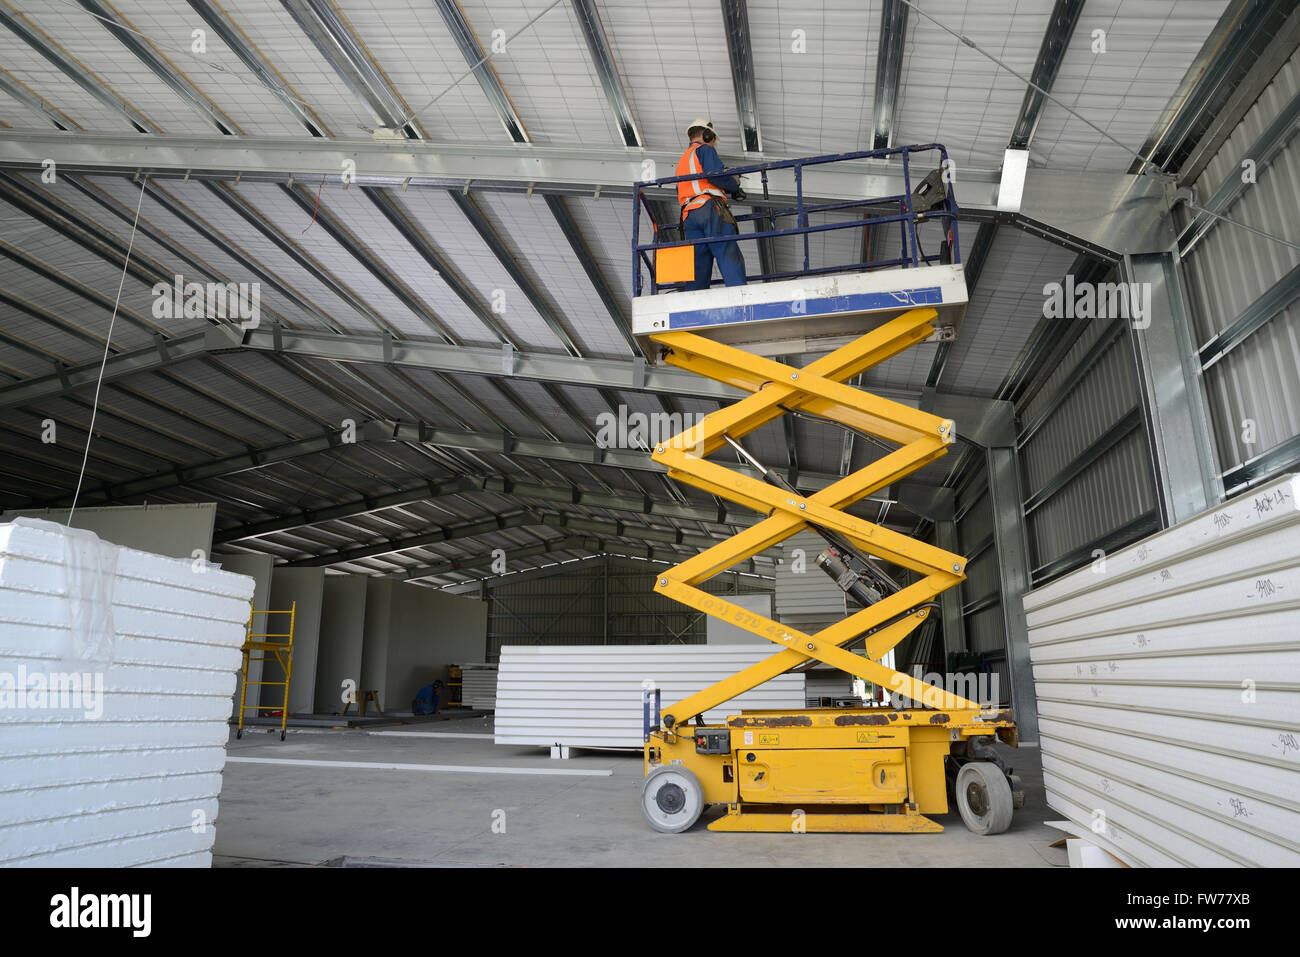 A builder works from the cage on a scissor lift while attaching